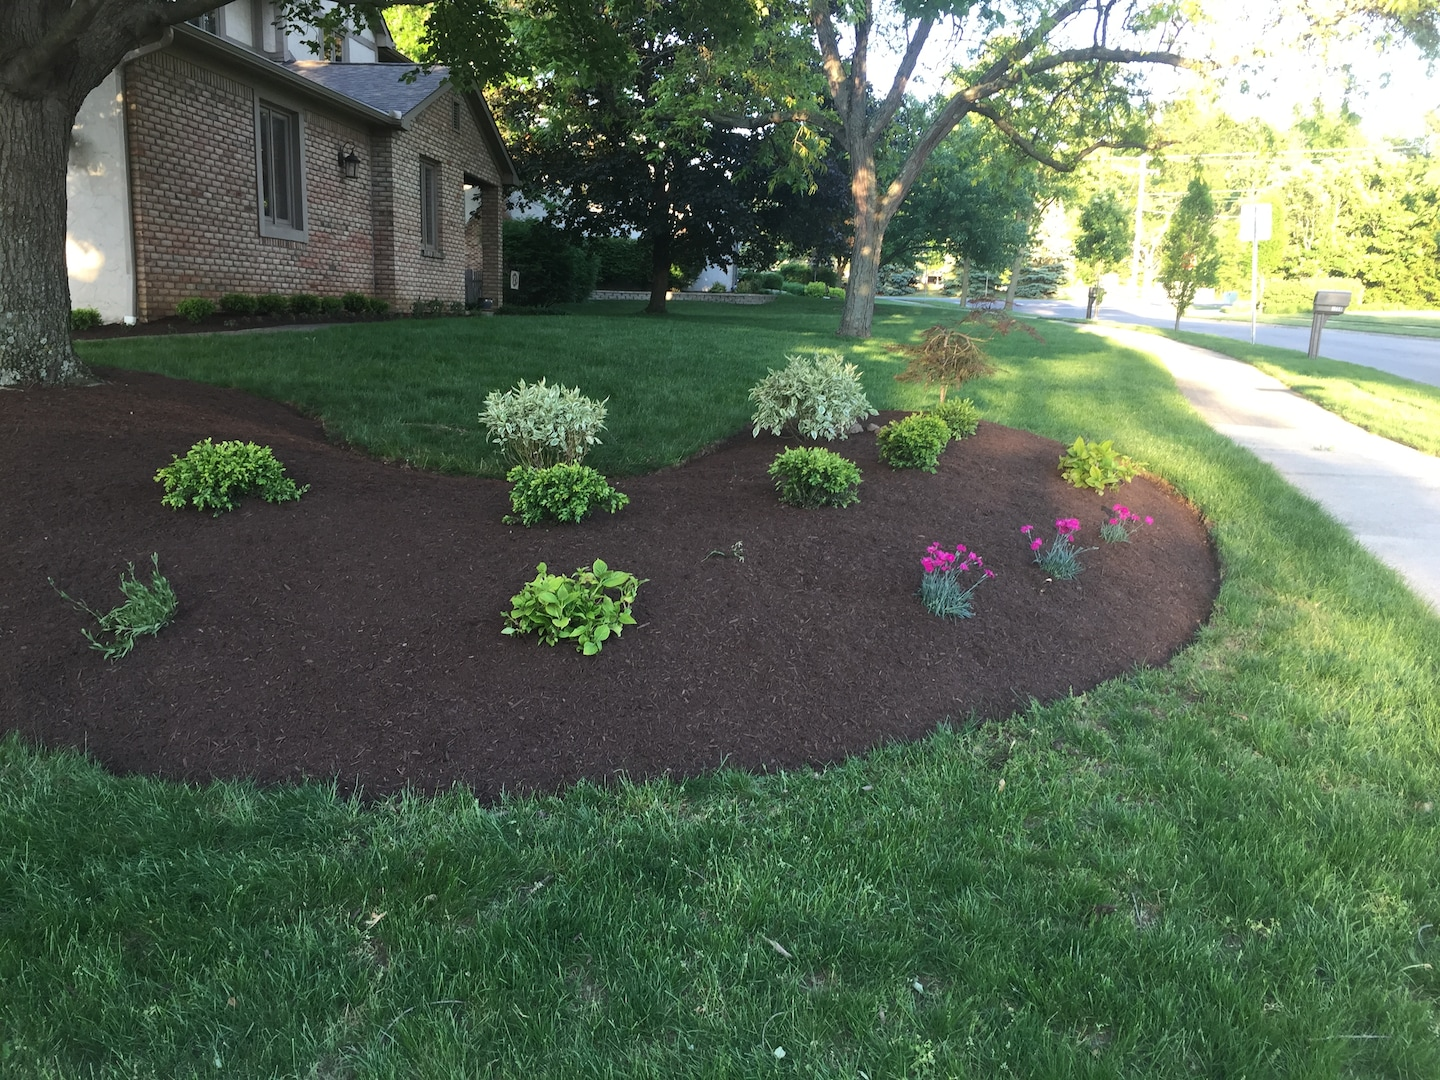 KM Landscape and Residential Services, LLC